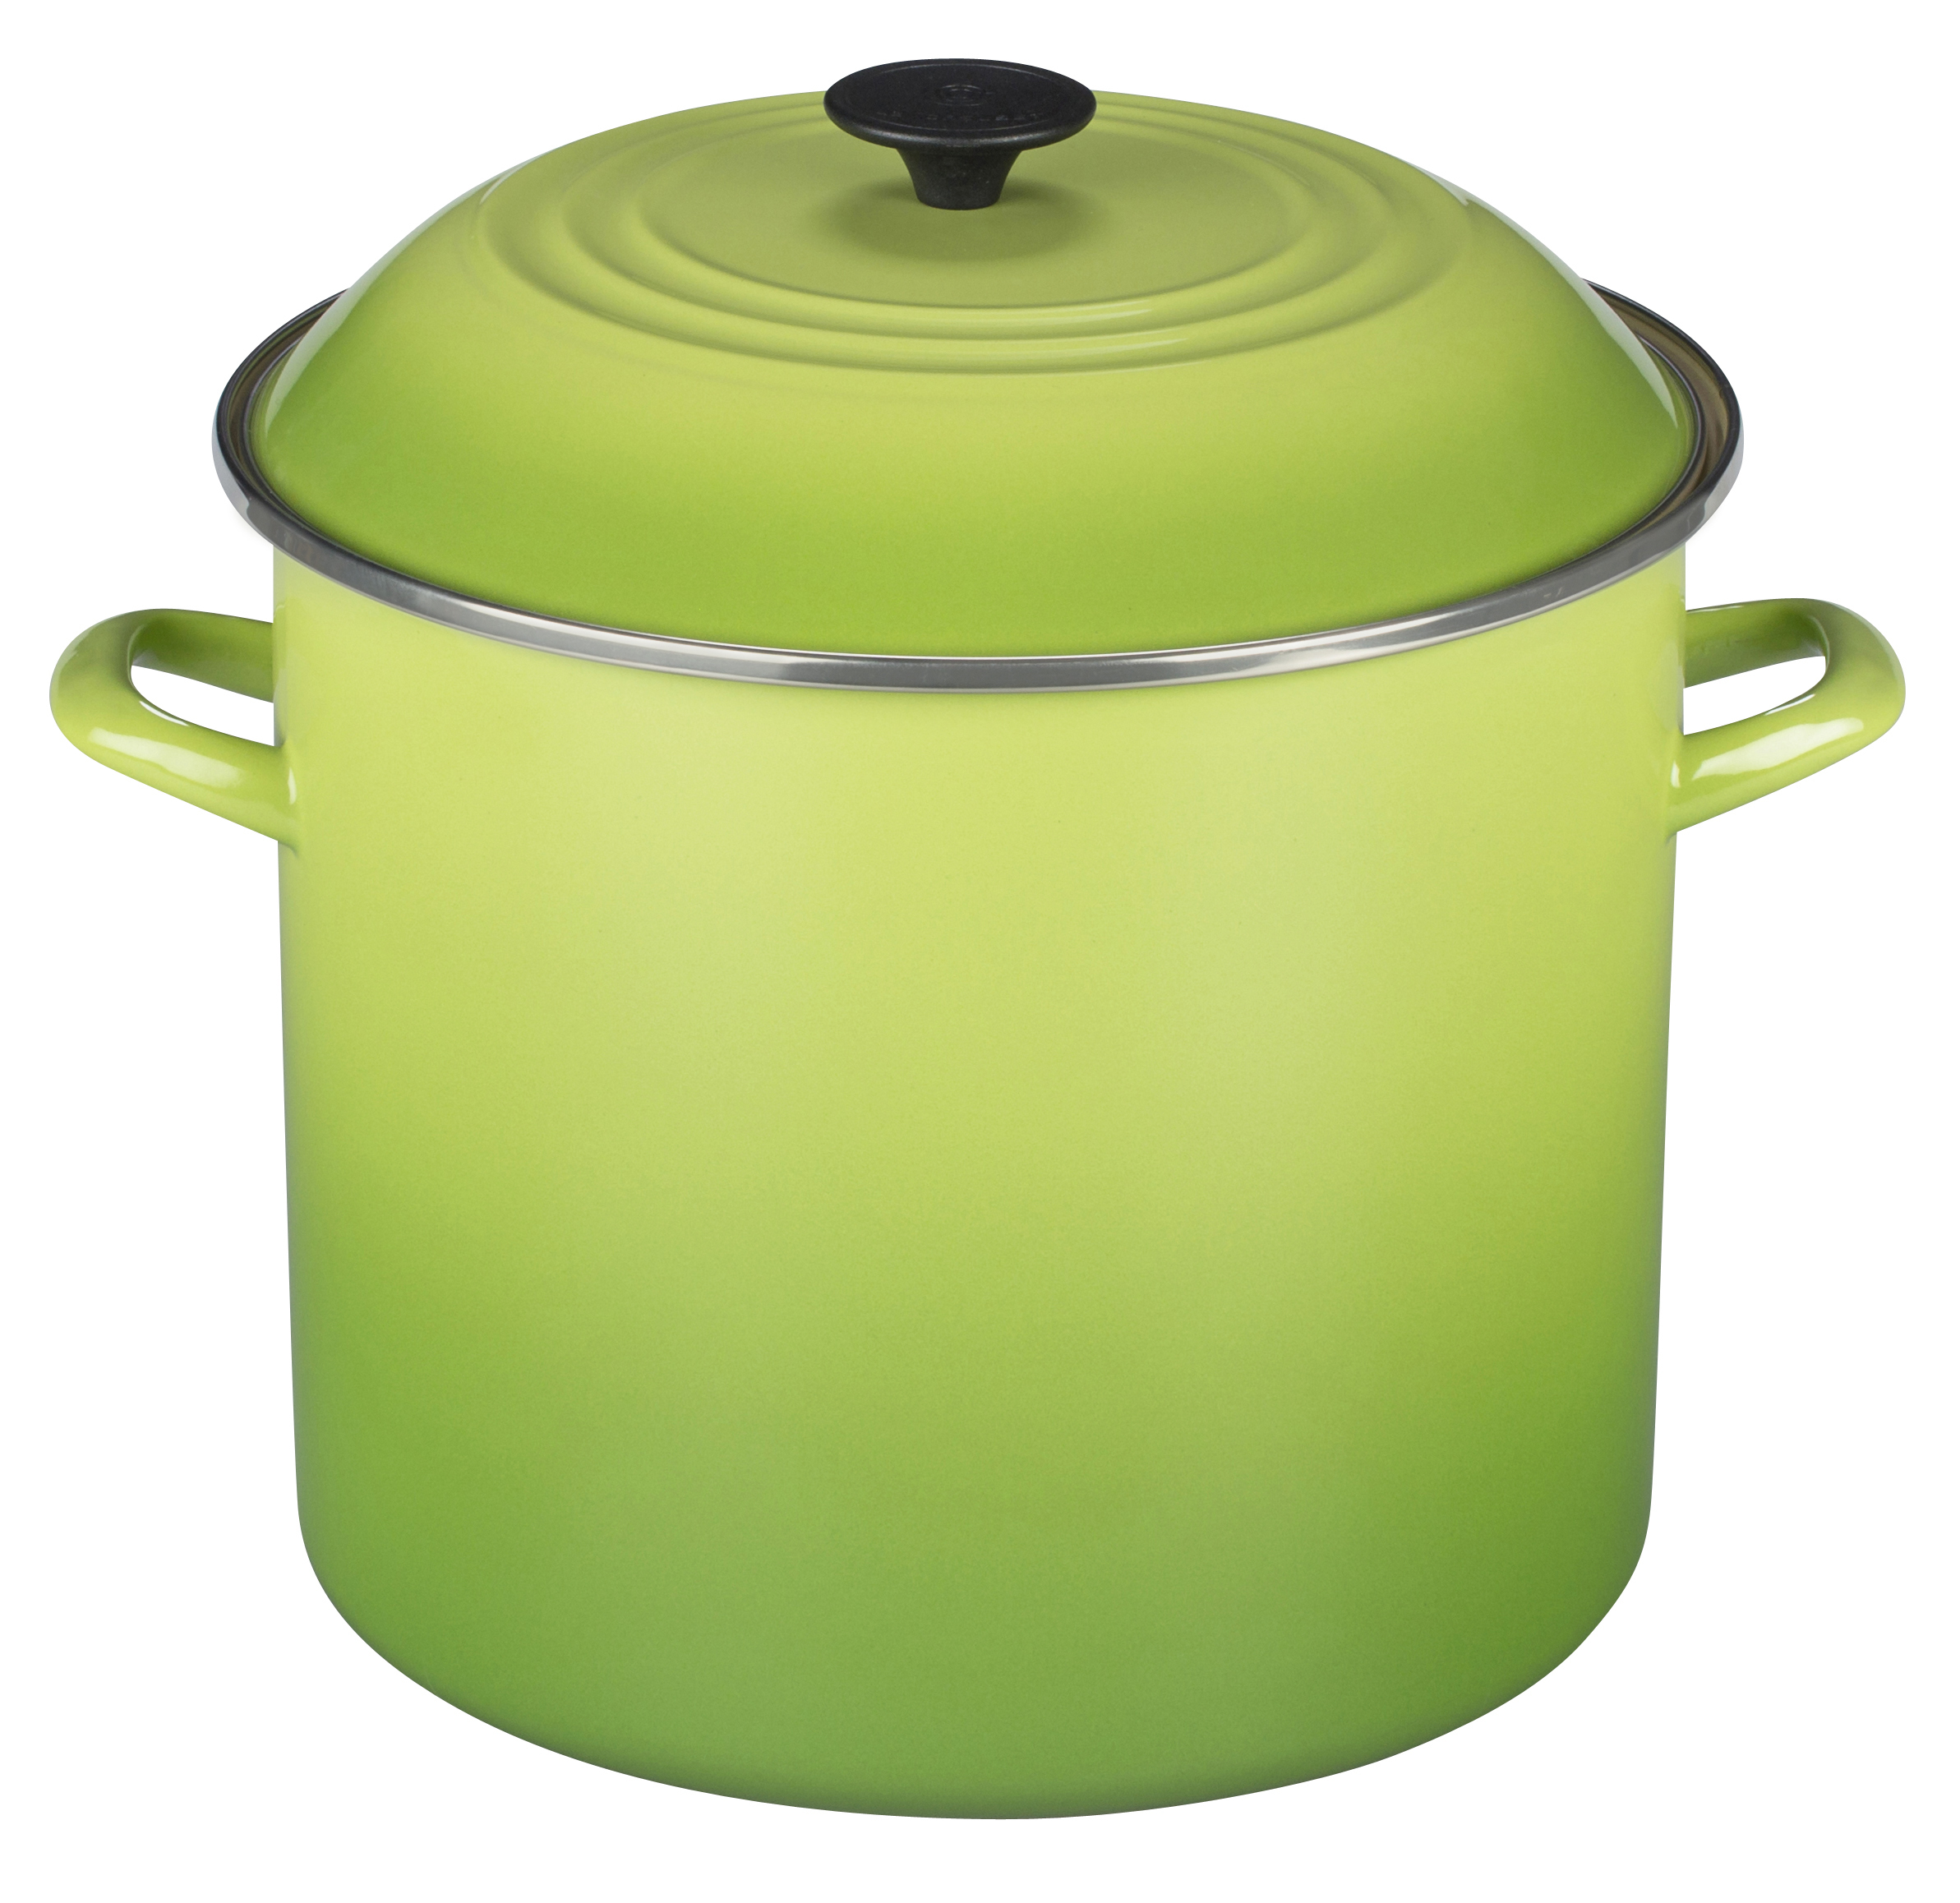 Le Creuset Palm Enamel on Steel Stockpot, 16 Quart